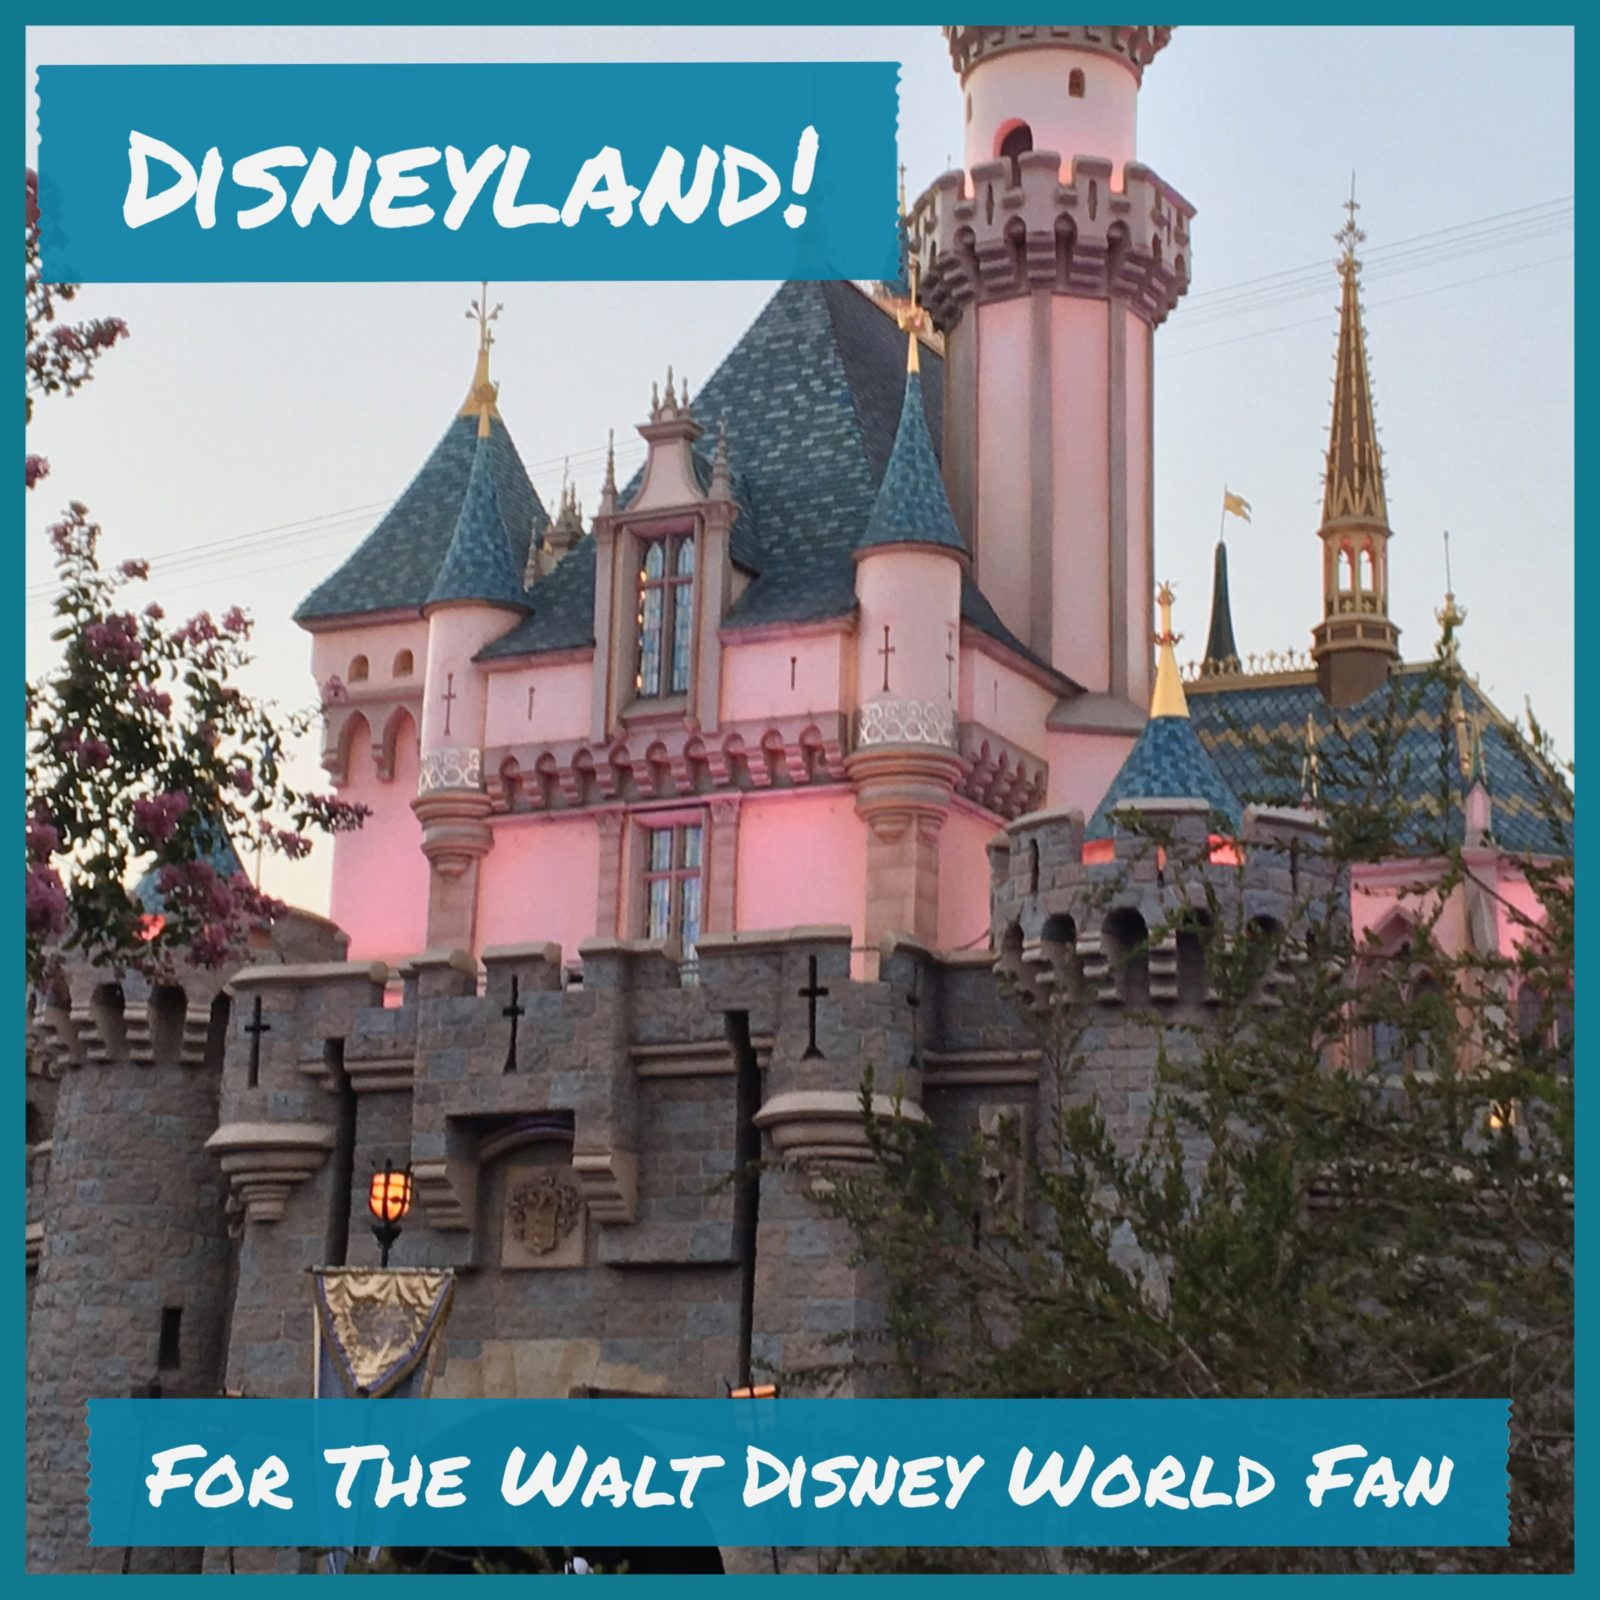 Disneyland for the Walt Disney World Fan